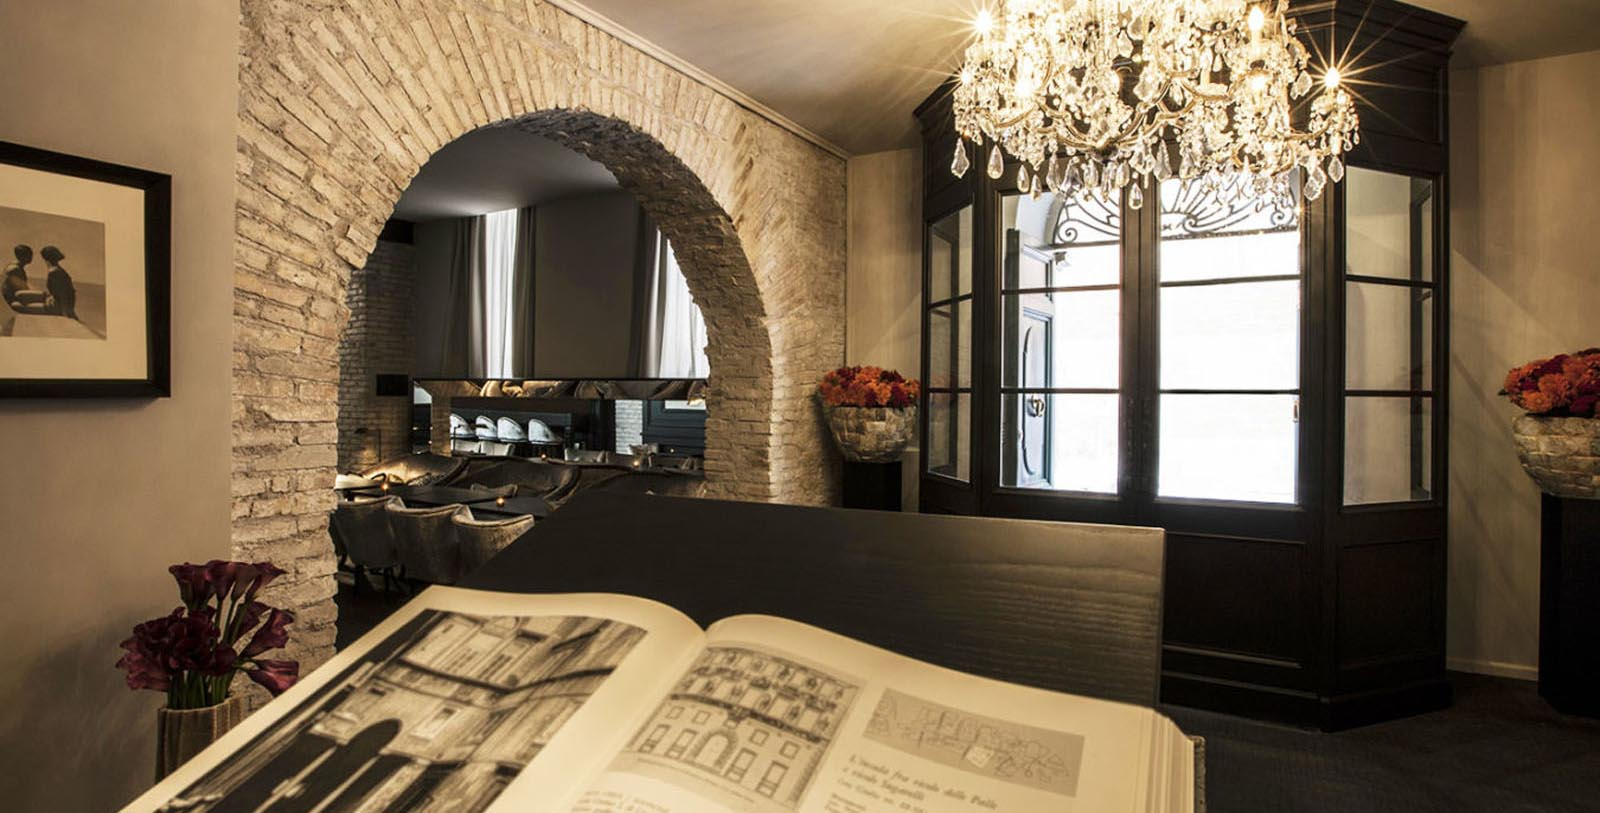 Image of the interior of the DOM Hotel, Rome Italy, Overview